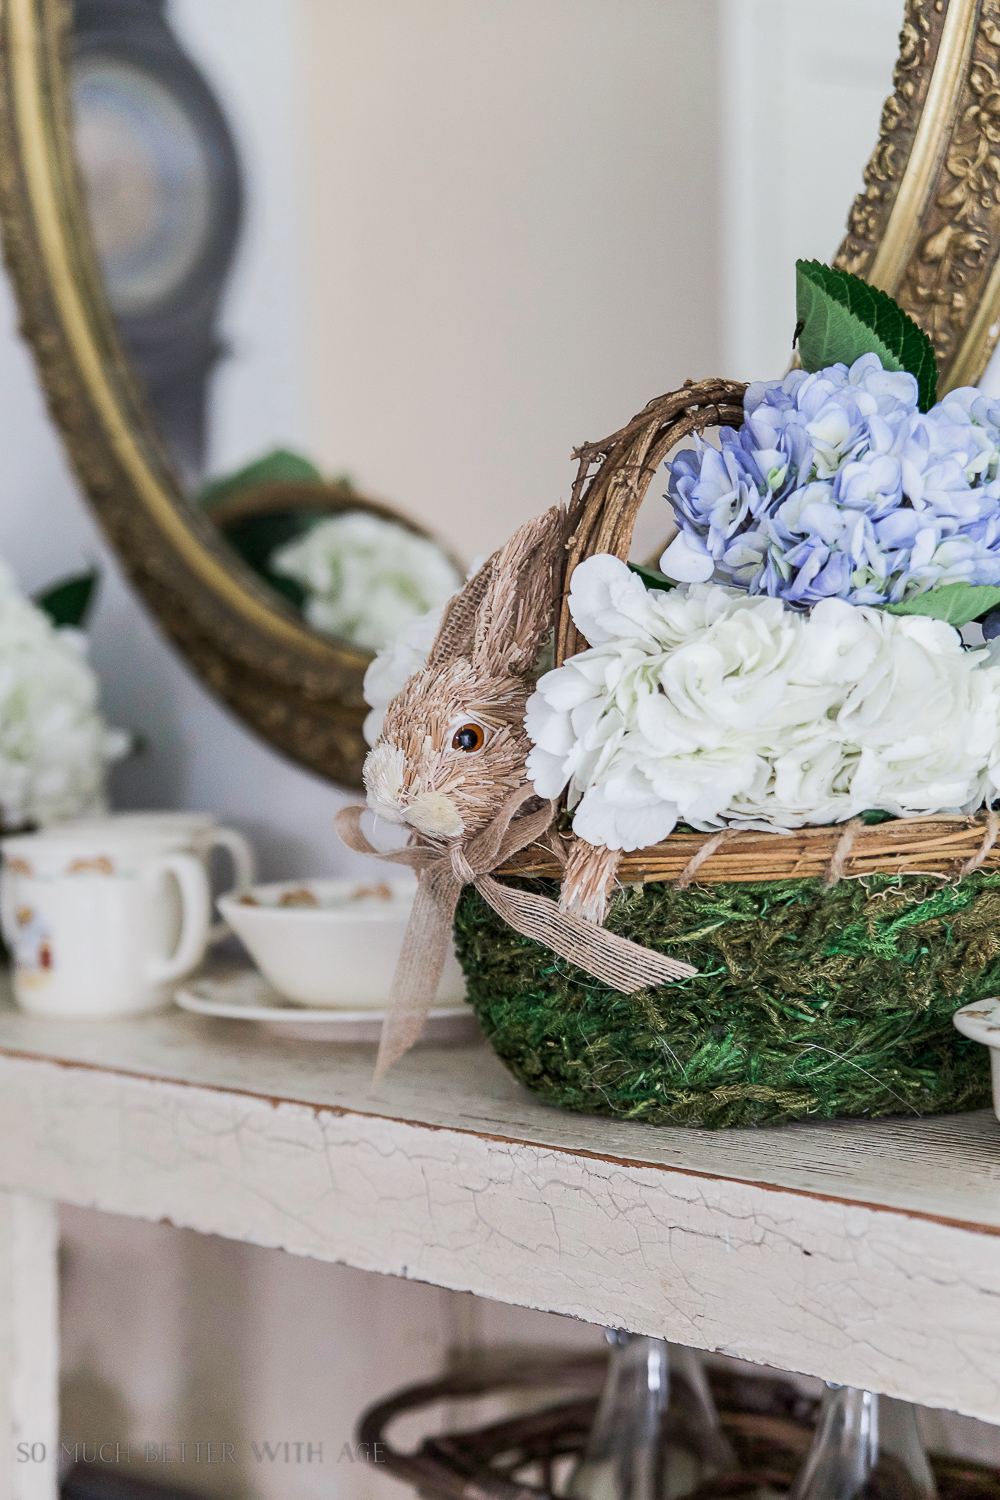 12 Creative Easter Decorating Ideas/bunny wicker basket - So Much Better With Age